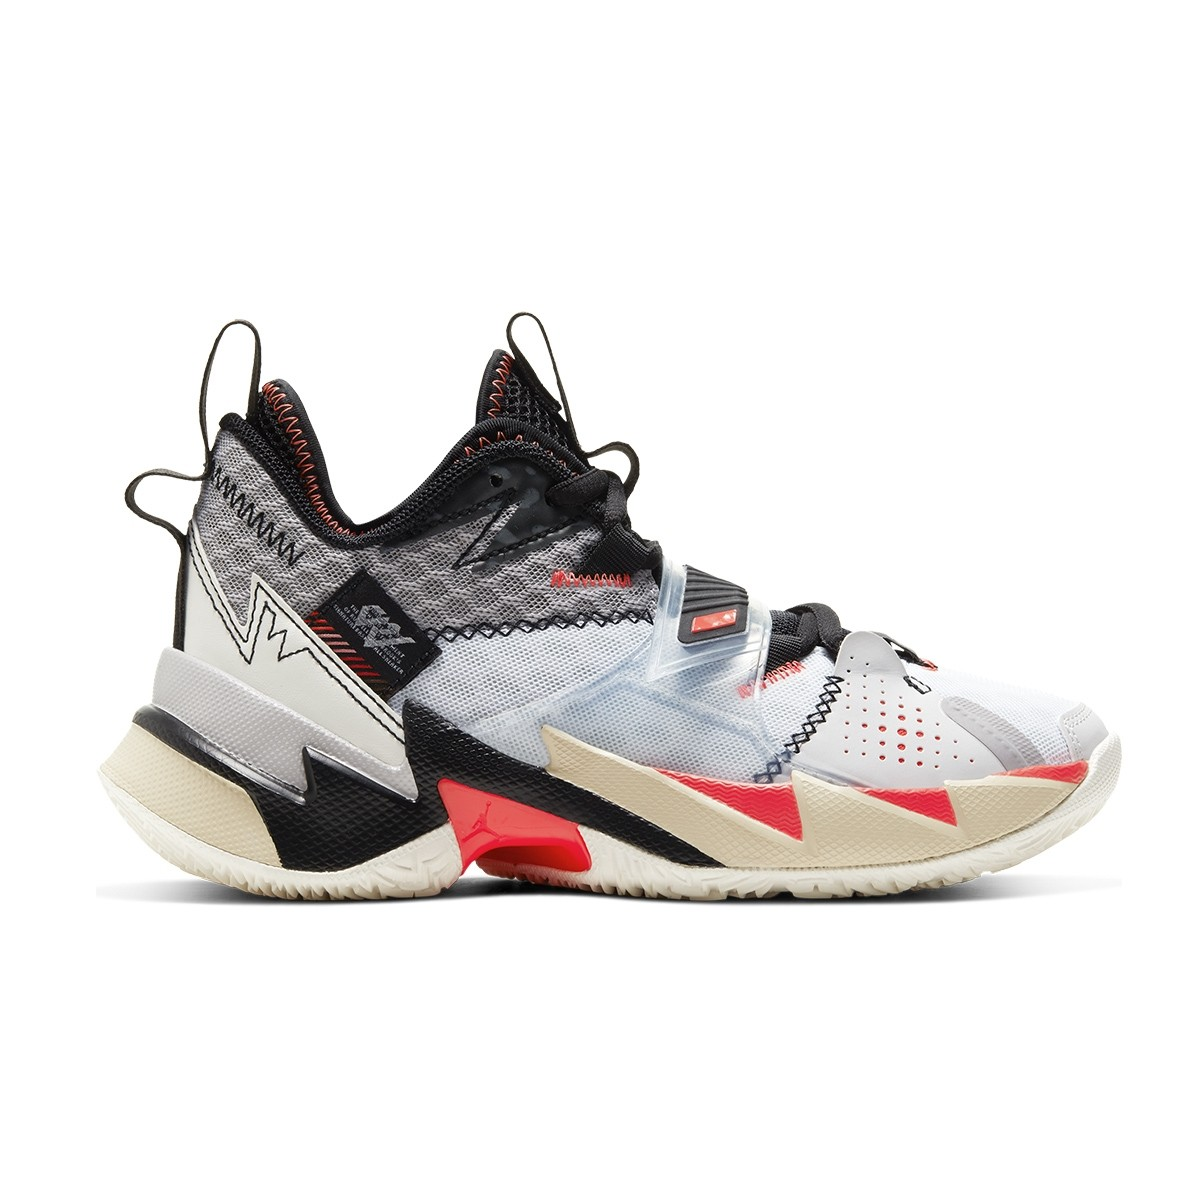 Jordan Why Not Zer0.3 GS 'Unite'